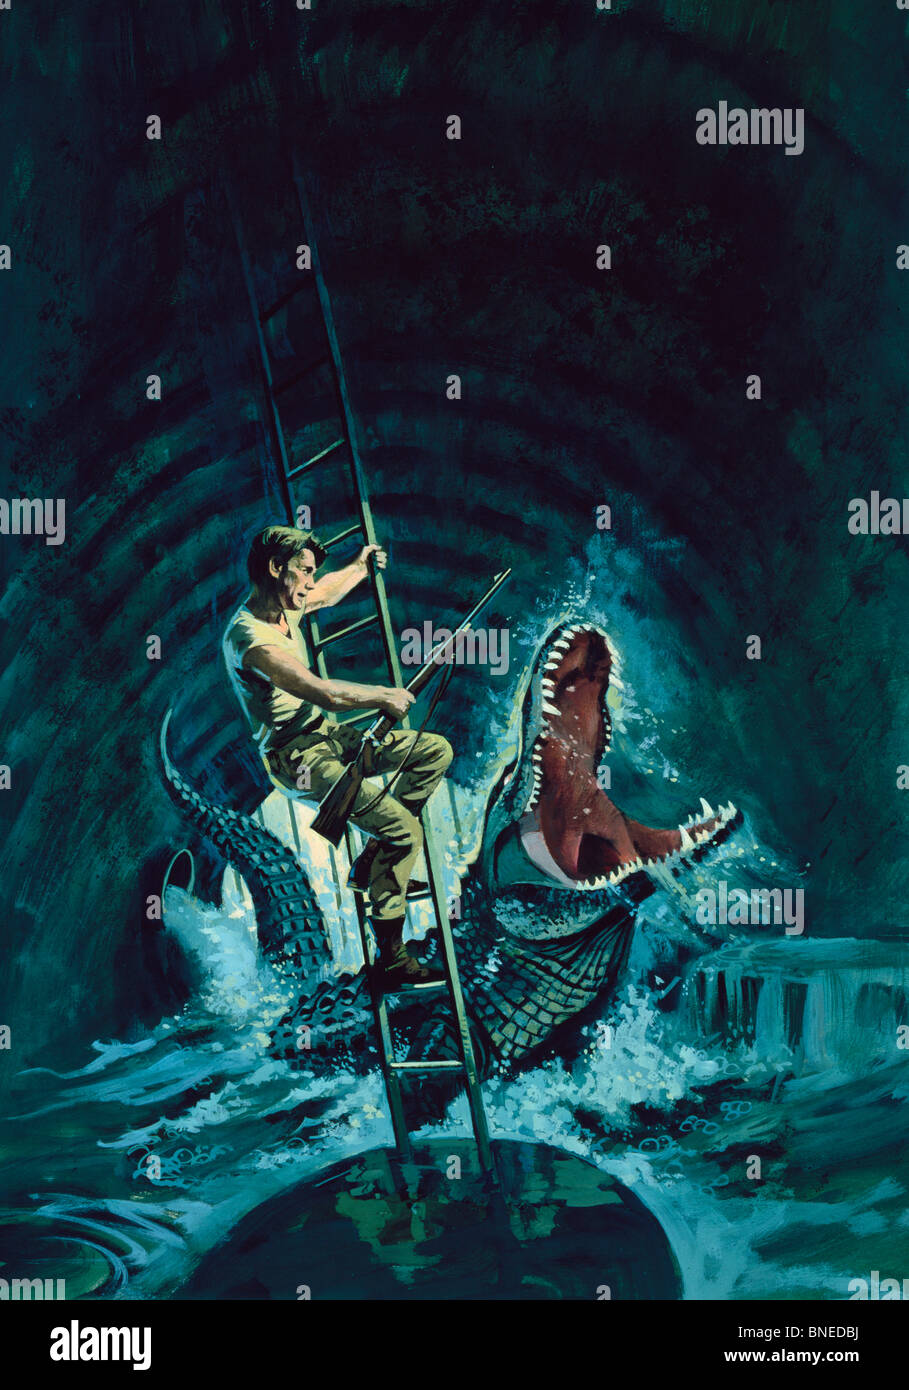 Man fighting with a giant crocodile in a drain - Stock Image